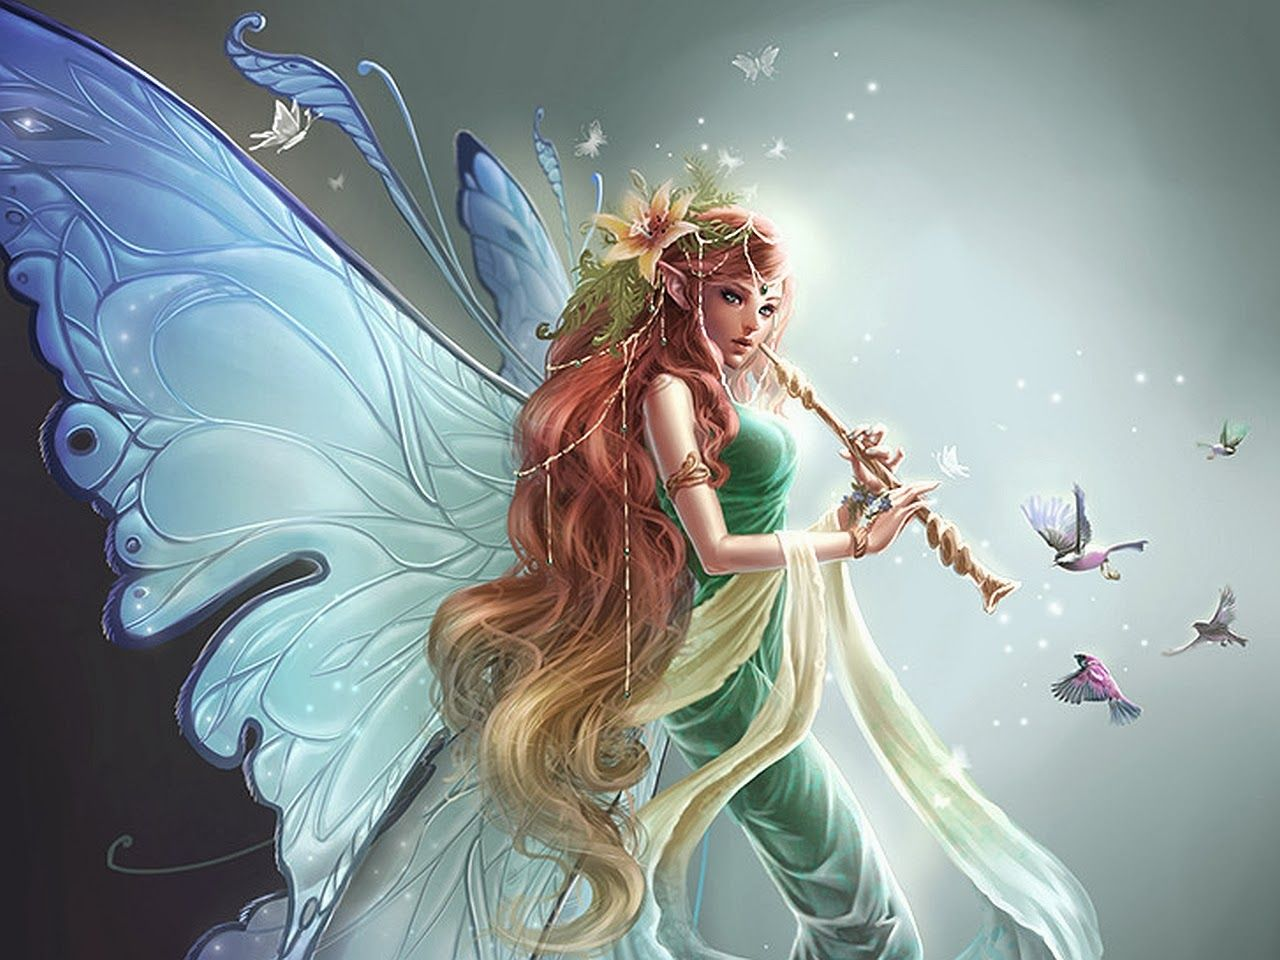 1280x960 - Fairy Wallpapers 10